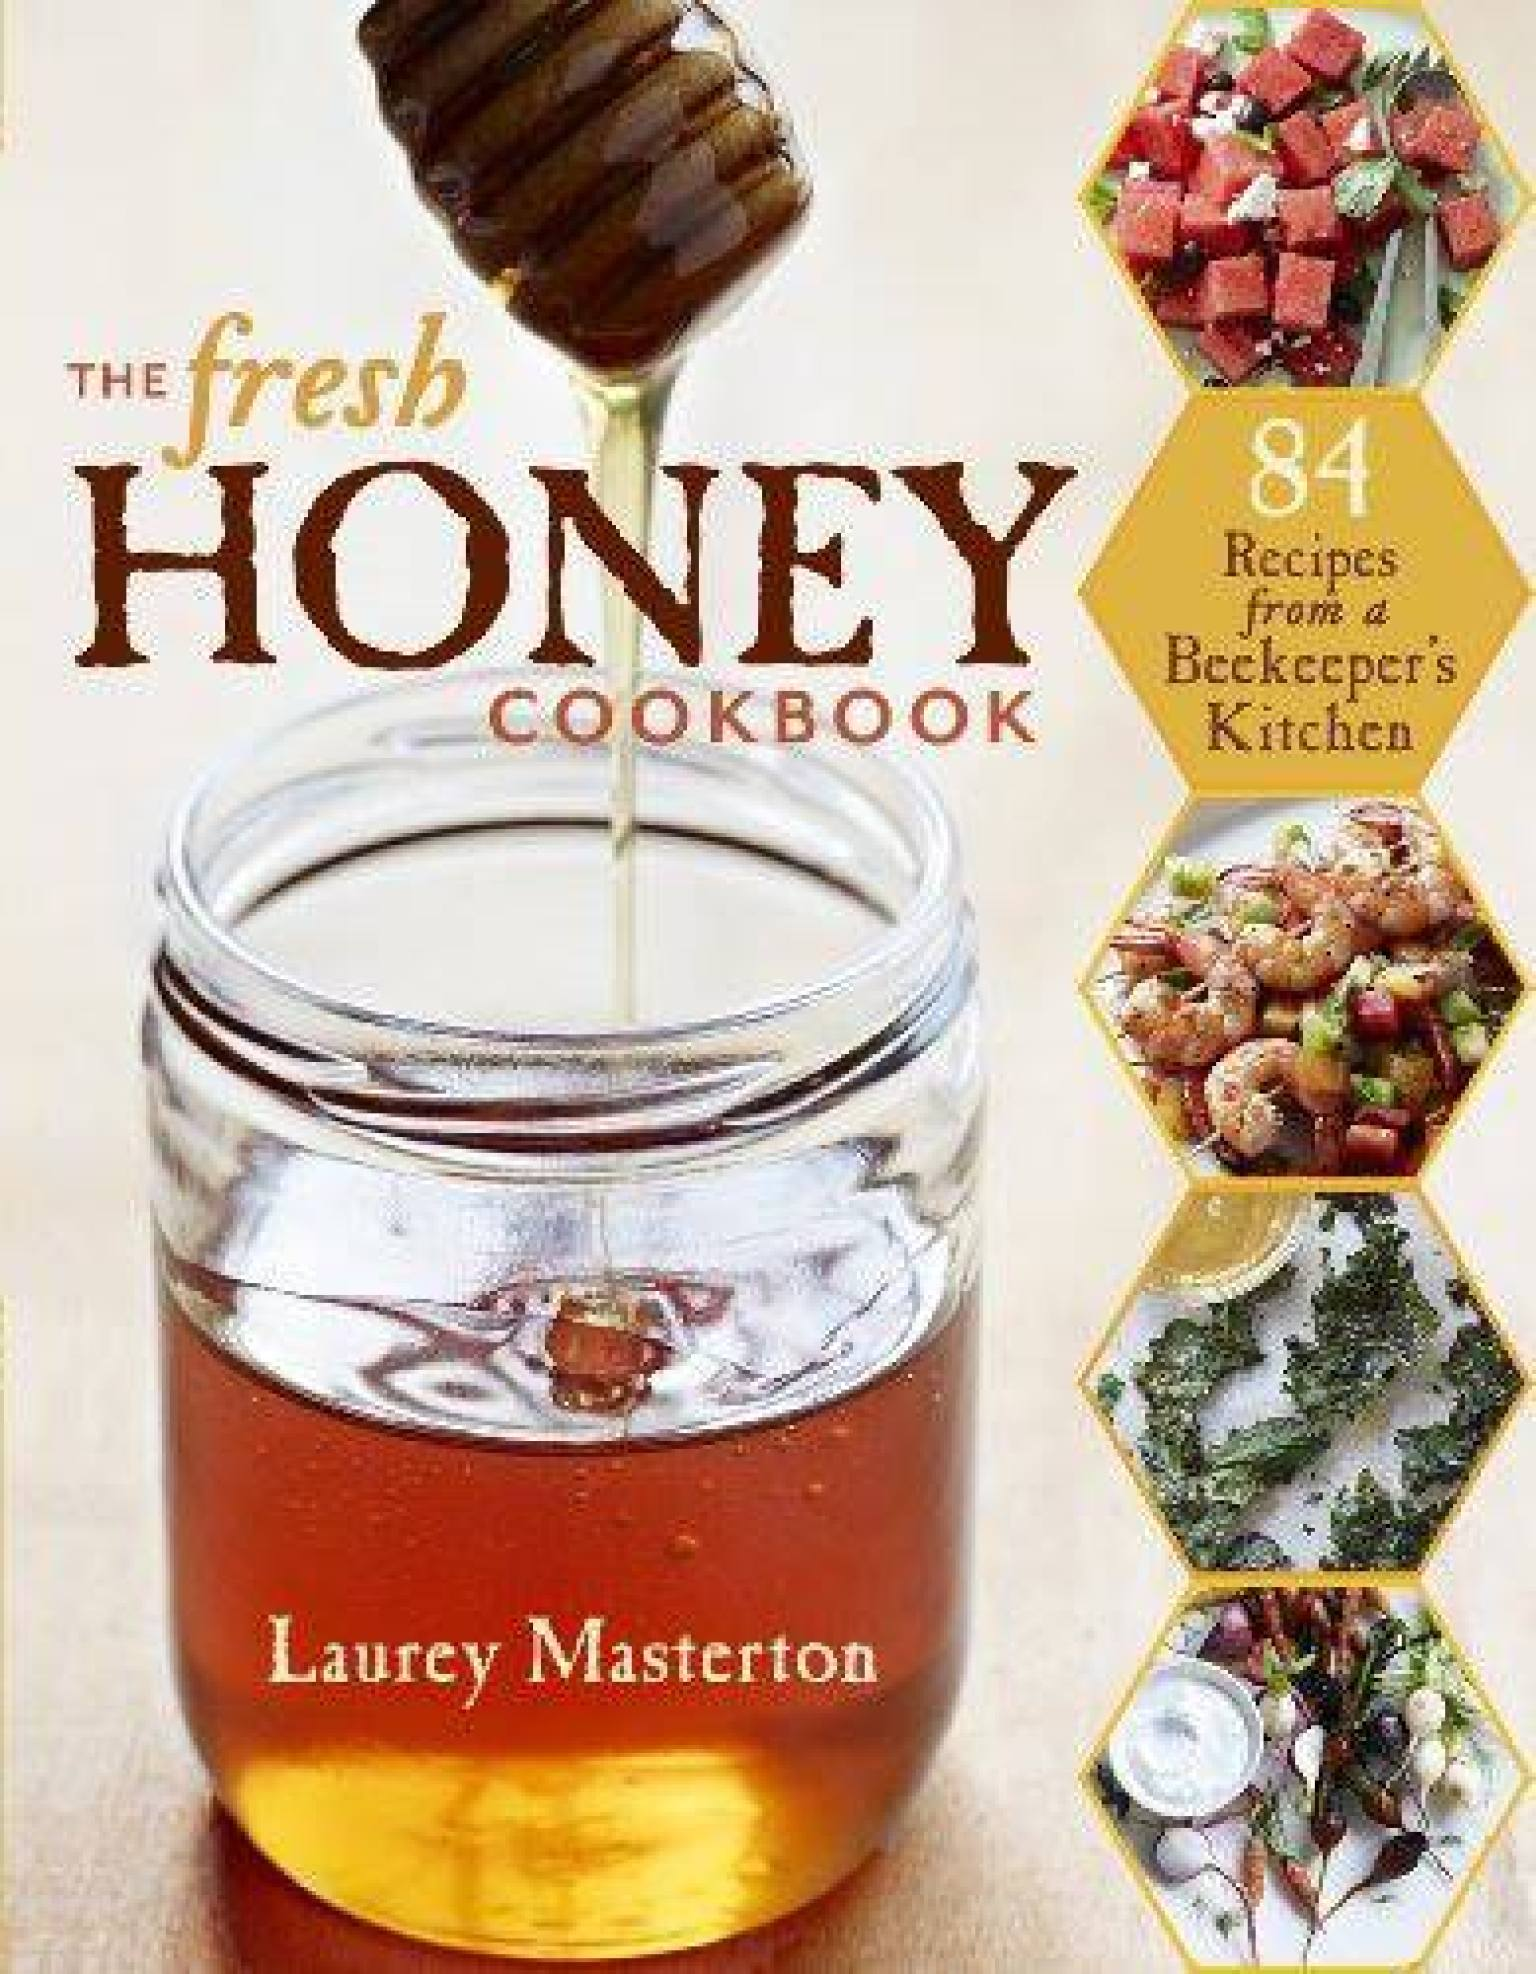 Rosh Hashanah Recipes Abound In \'The Fresh Honey Cookbook\' By Laurey ...